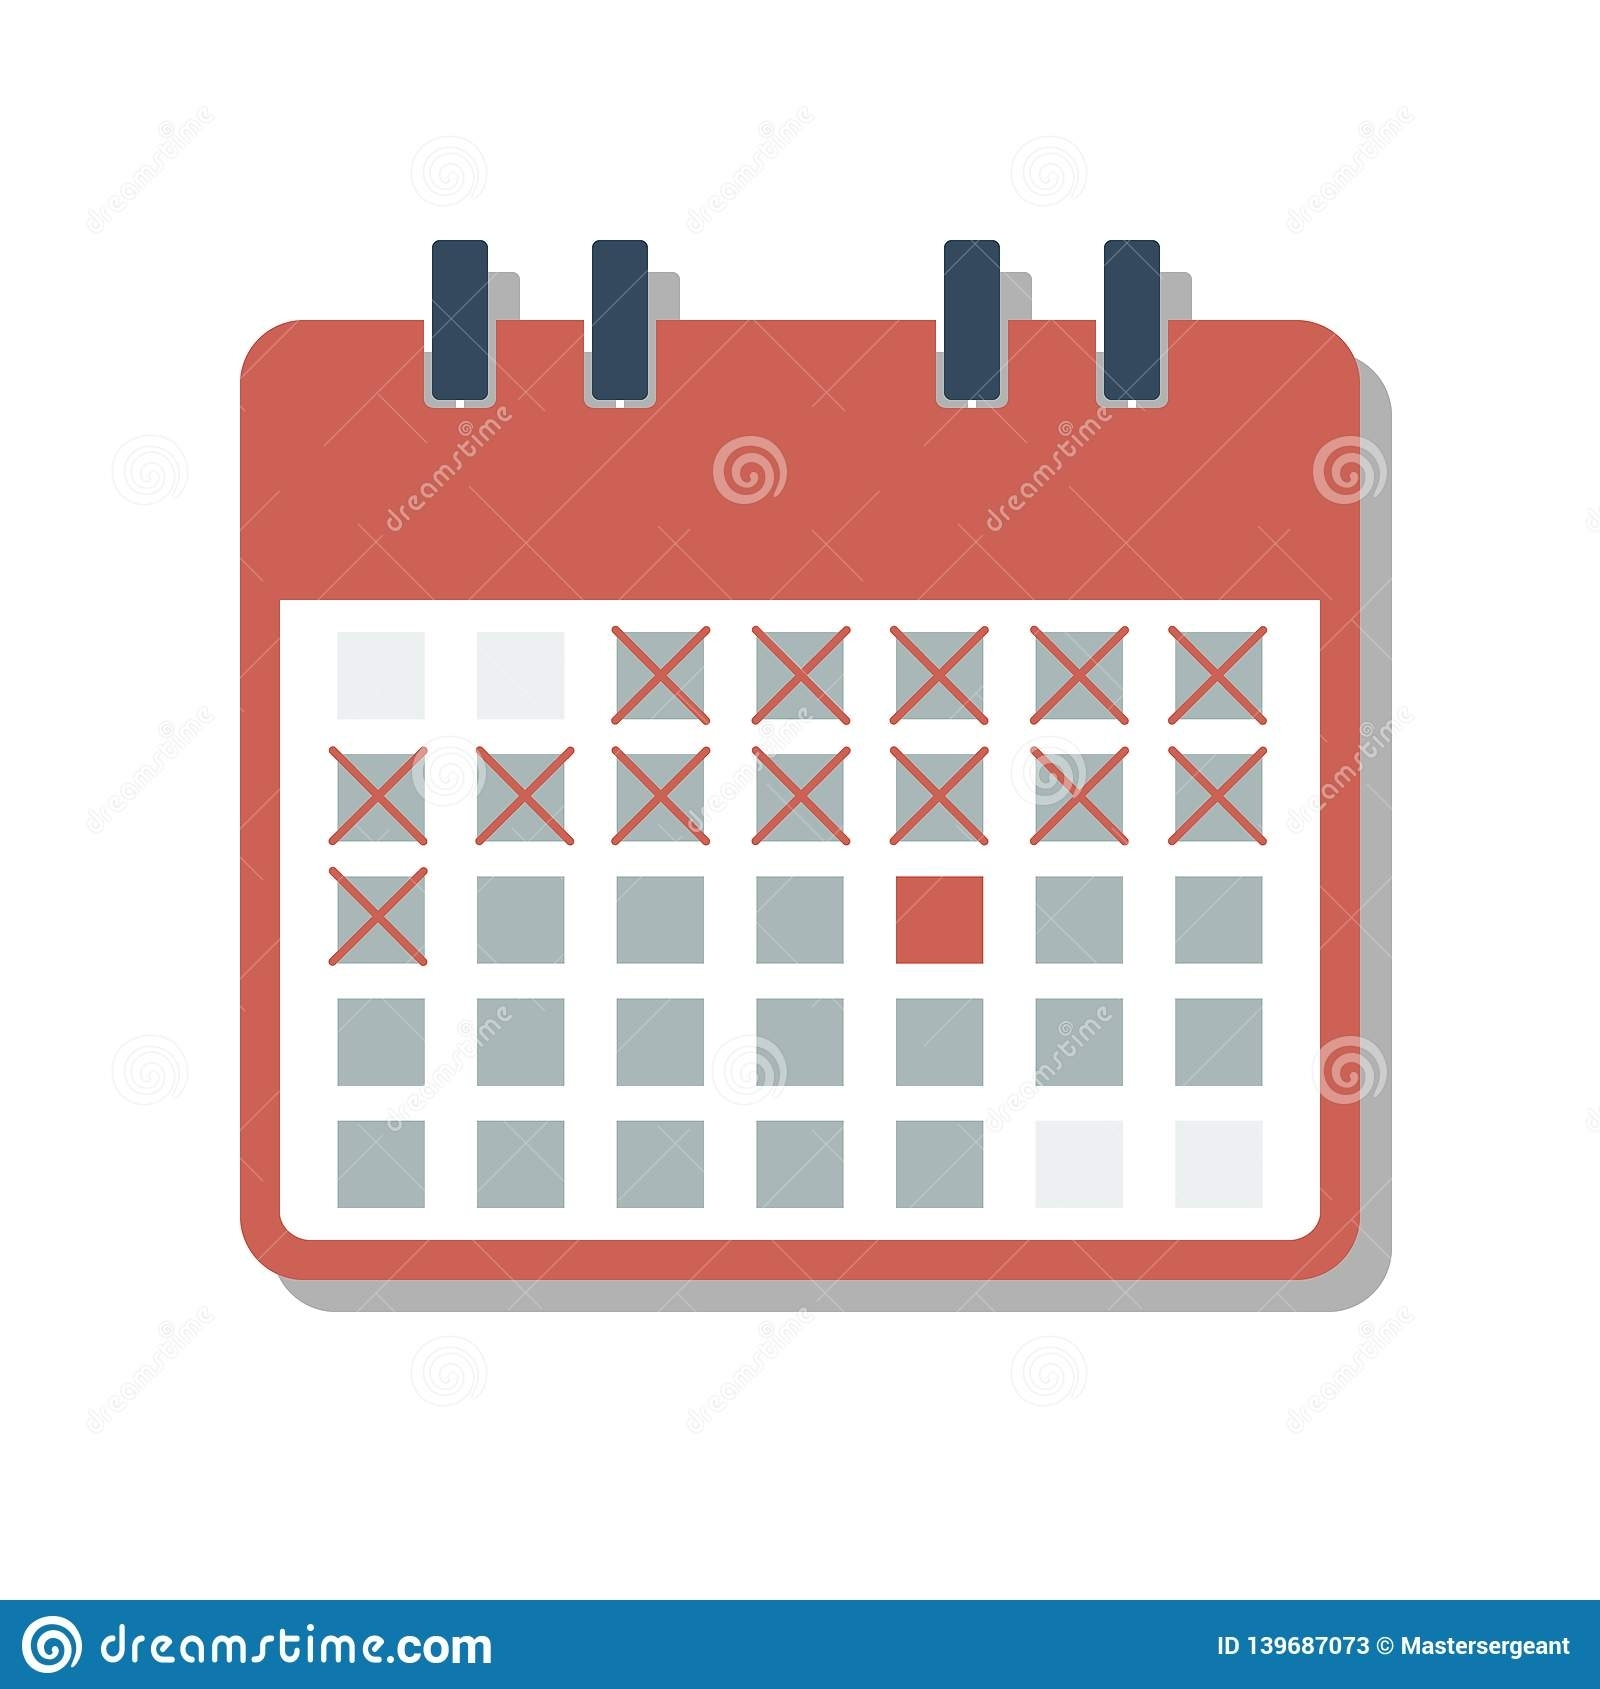 Red Calendar Grid With Cross Marked Days, Countdown Days Concept Stock Vector - Illustration Of